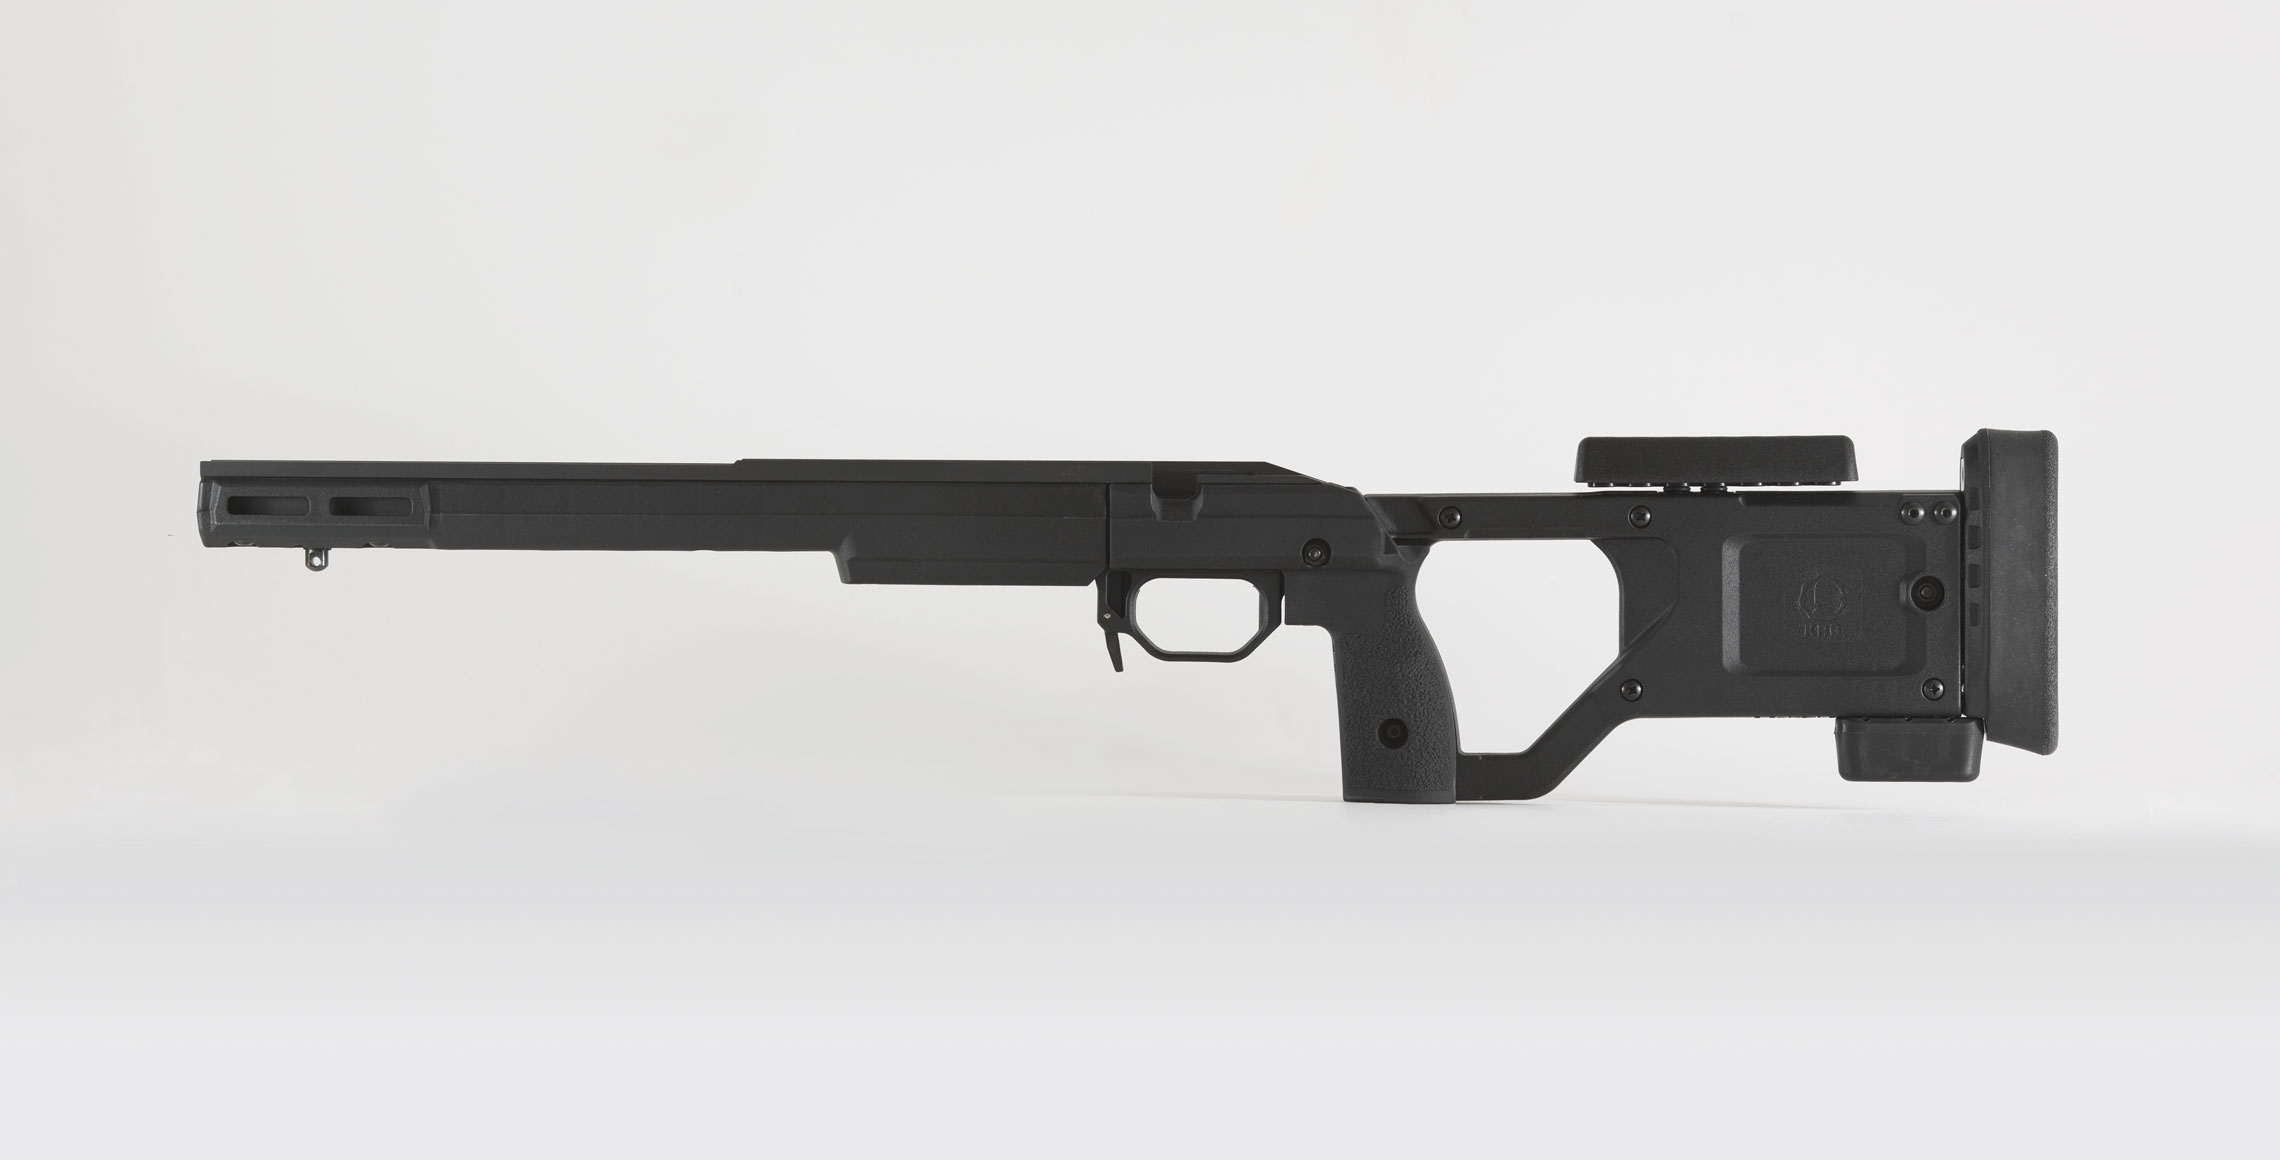 Tikka t3 stock options